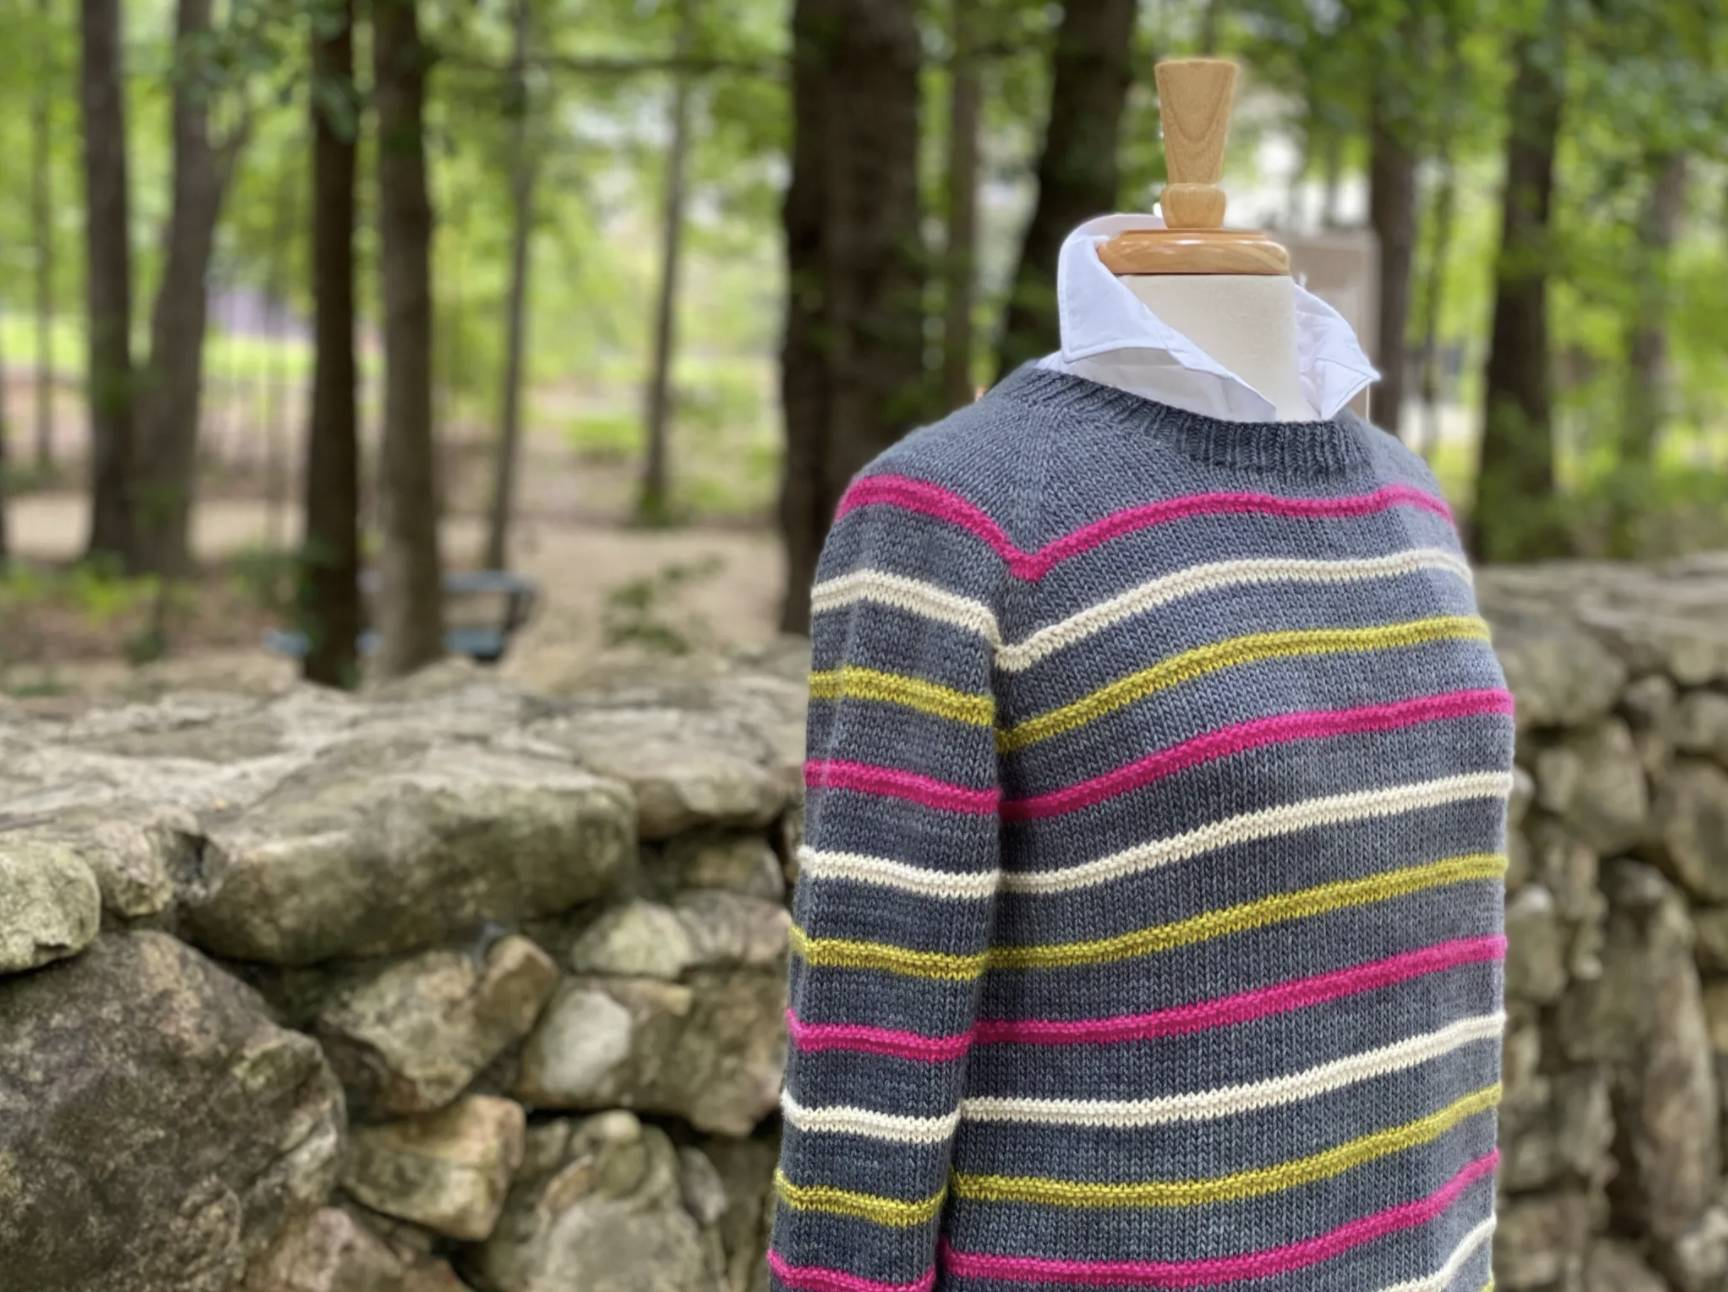 PLUCKY KNITTER YARNS — PERFECT FOR A VARIETY OF PROJECTS!